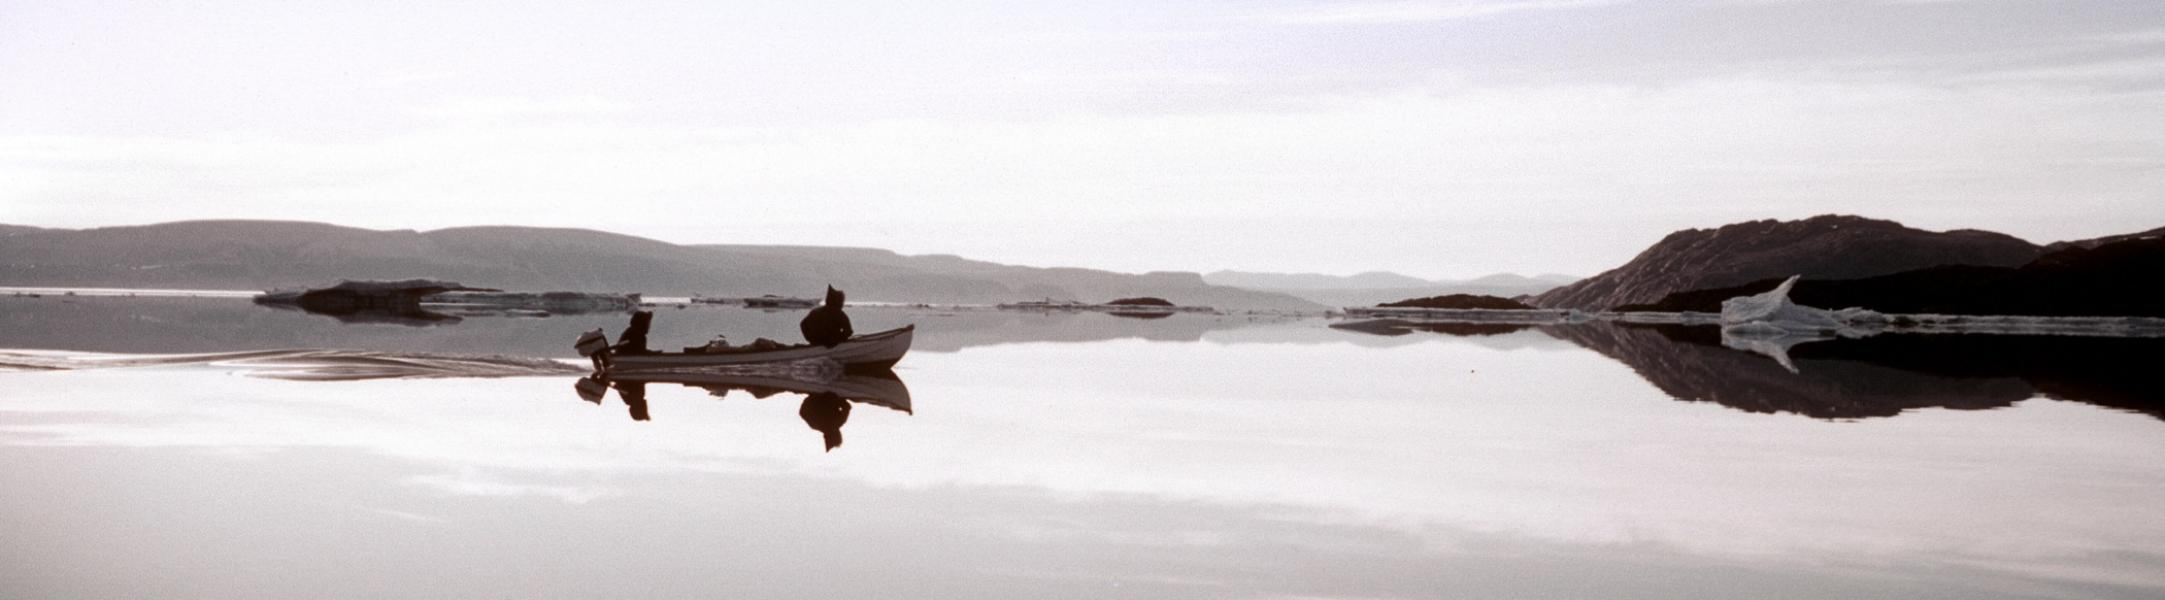 two men in a small motorized boat travel across arctic waters